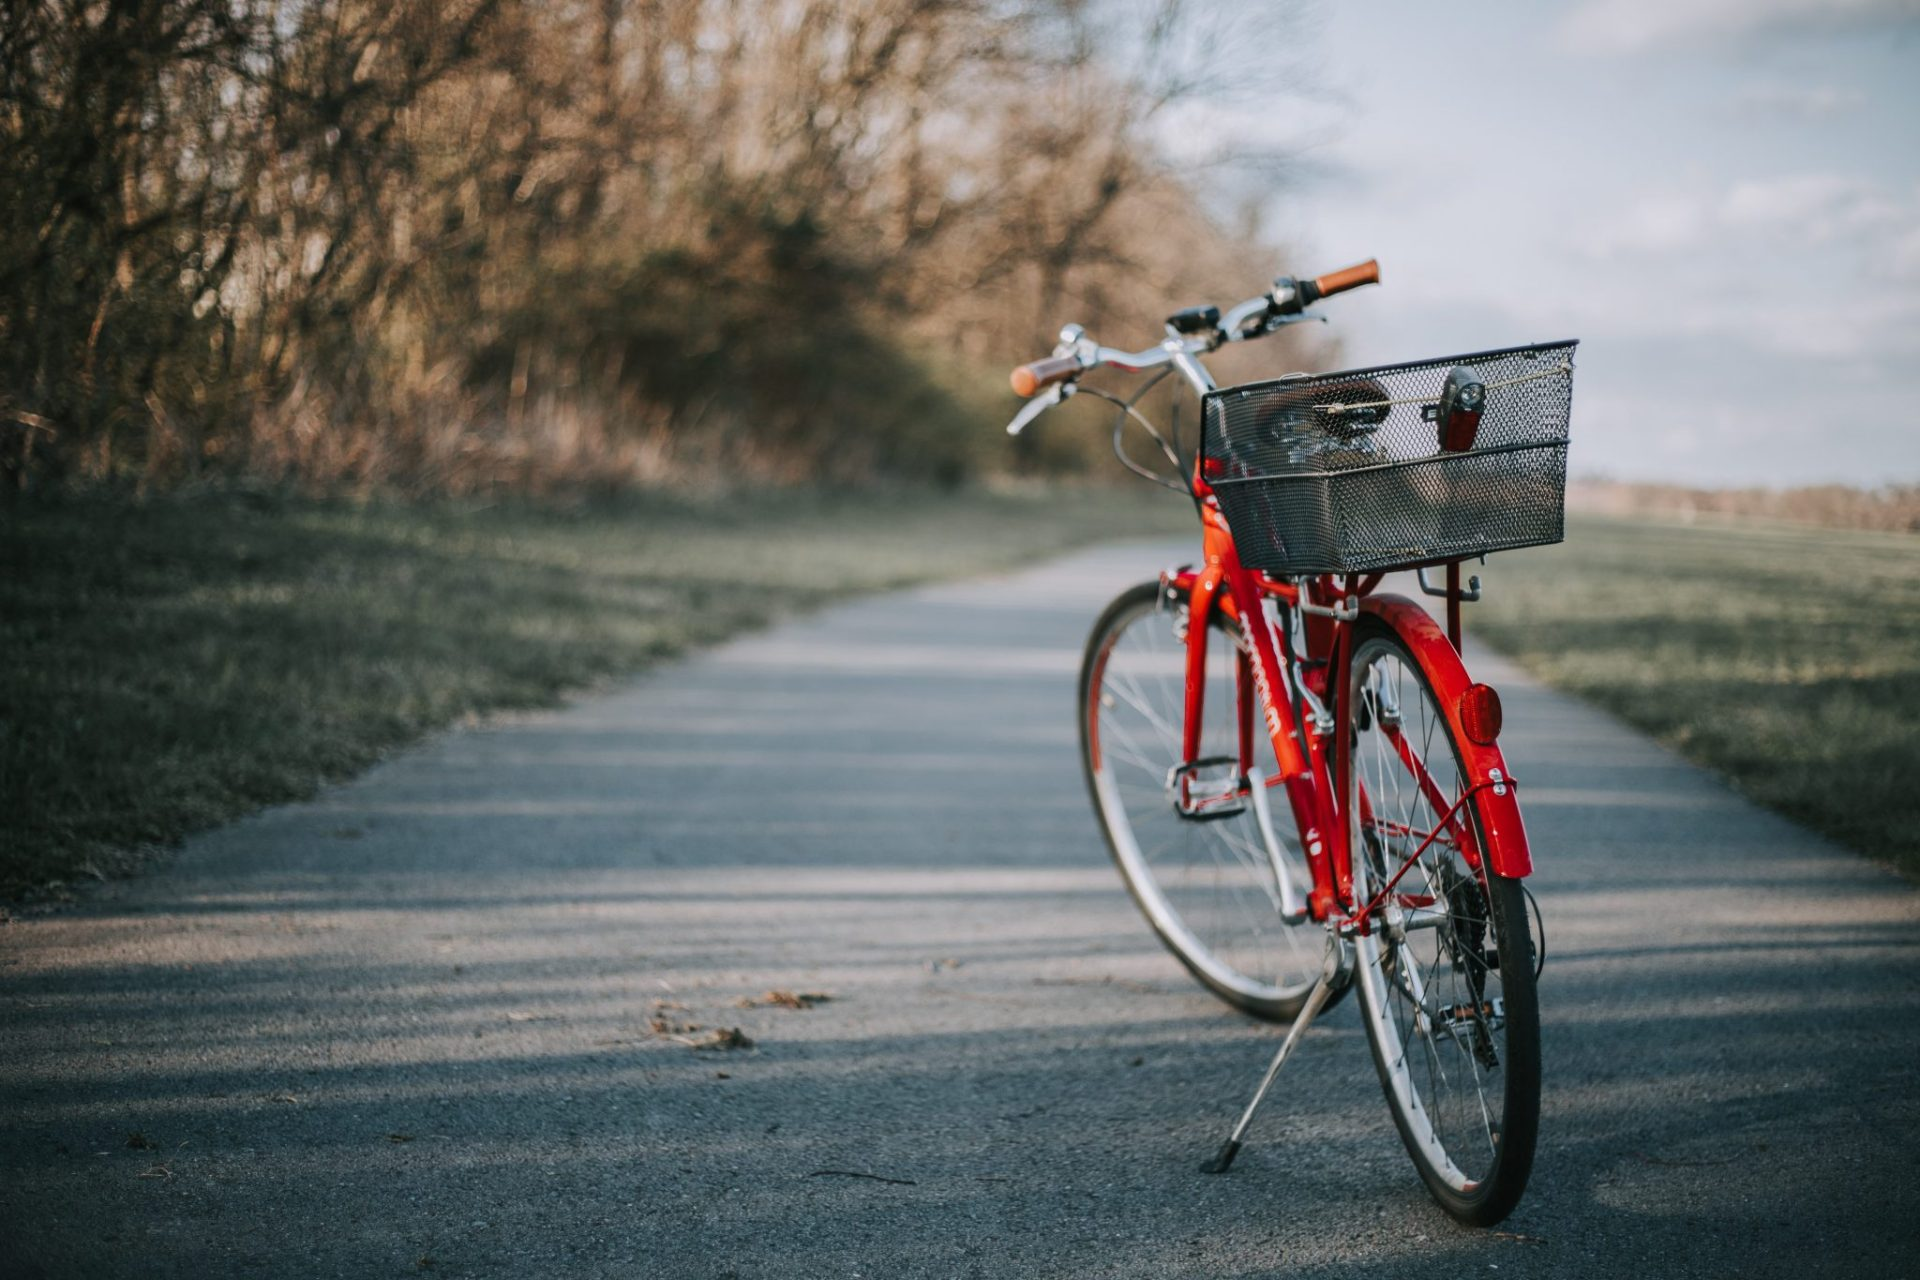 Protecting Your Bicycle | Keep Your Eco-Friendly Ride Safe